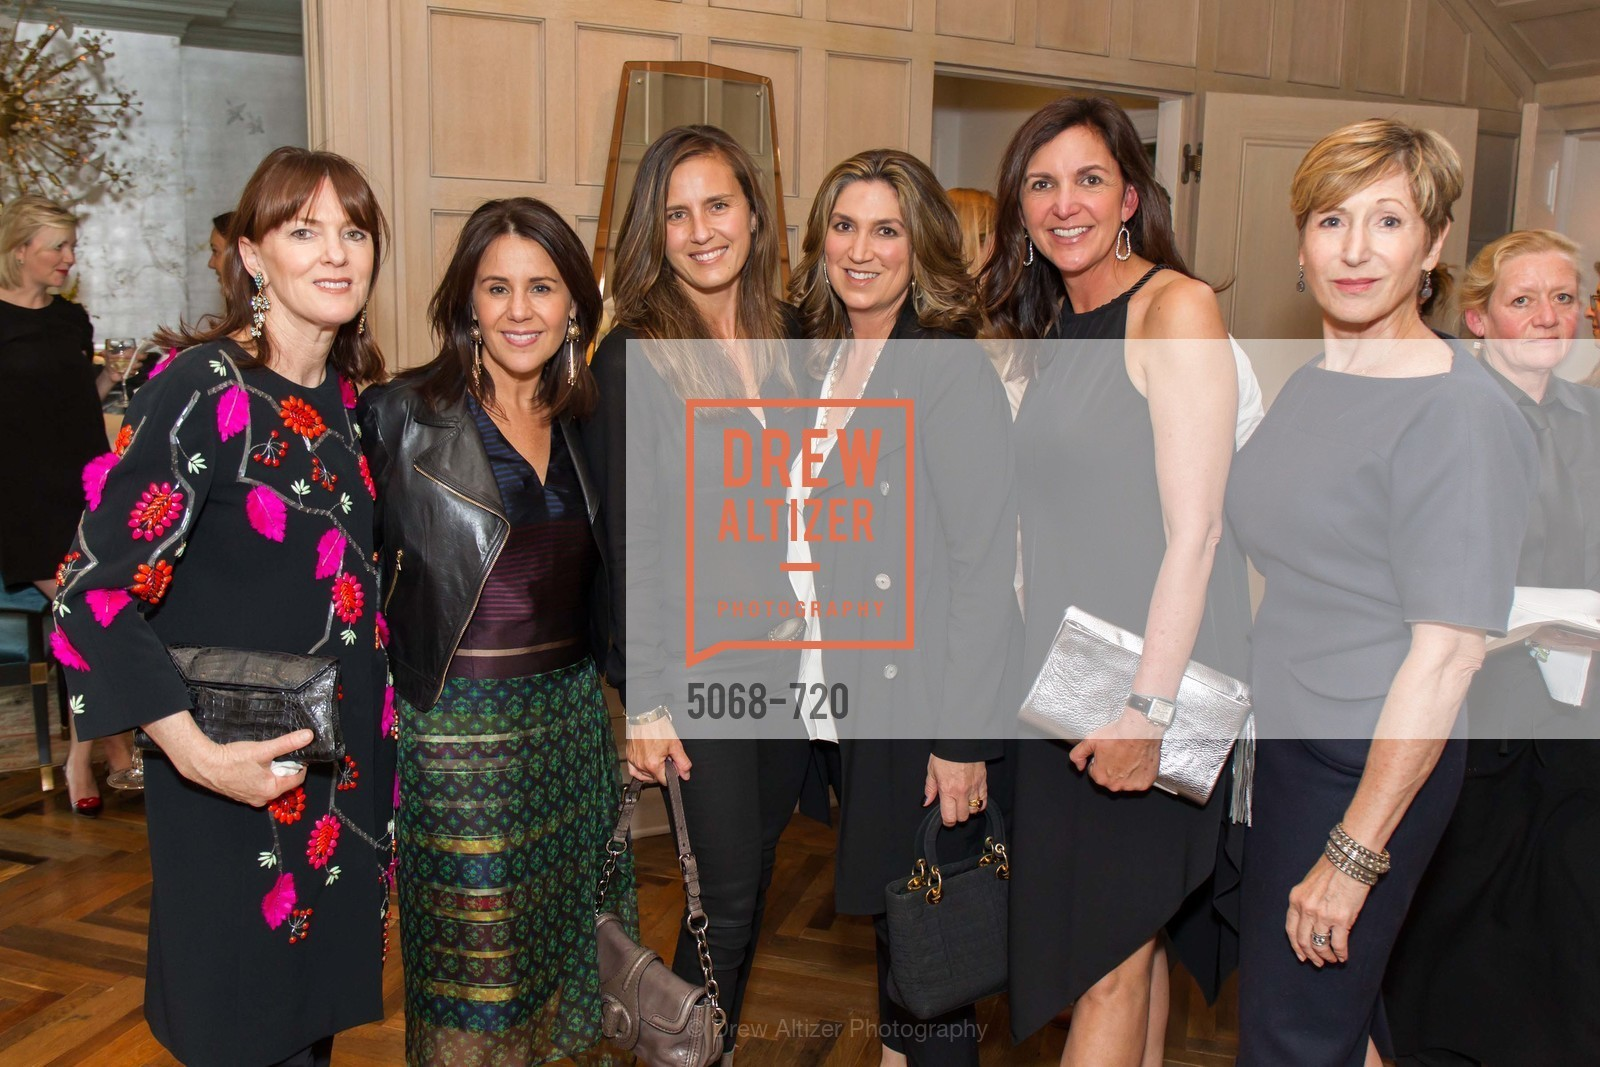 Allison Speer, Leslie Campoy, Becca Hydorn, Marissa Brandon, Jenna Feinberg, Ann Paolini, C MAGAZINE Editors Cocktail Party, US, May 13th, 2015,Drew Altizer, Drew Altizer Photography, full-service agency, private events, San Francisco photographer, photographer california